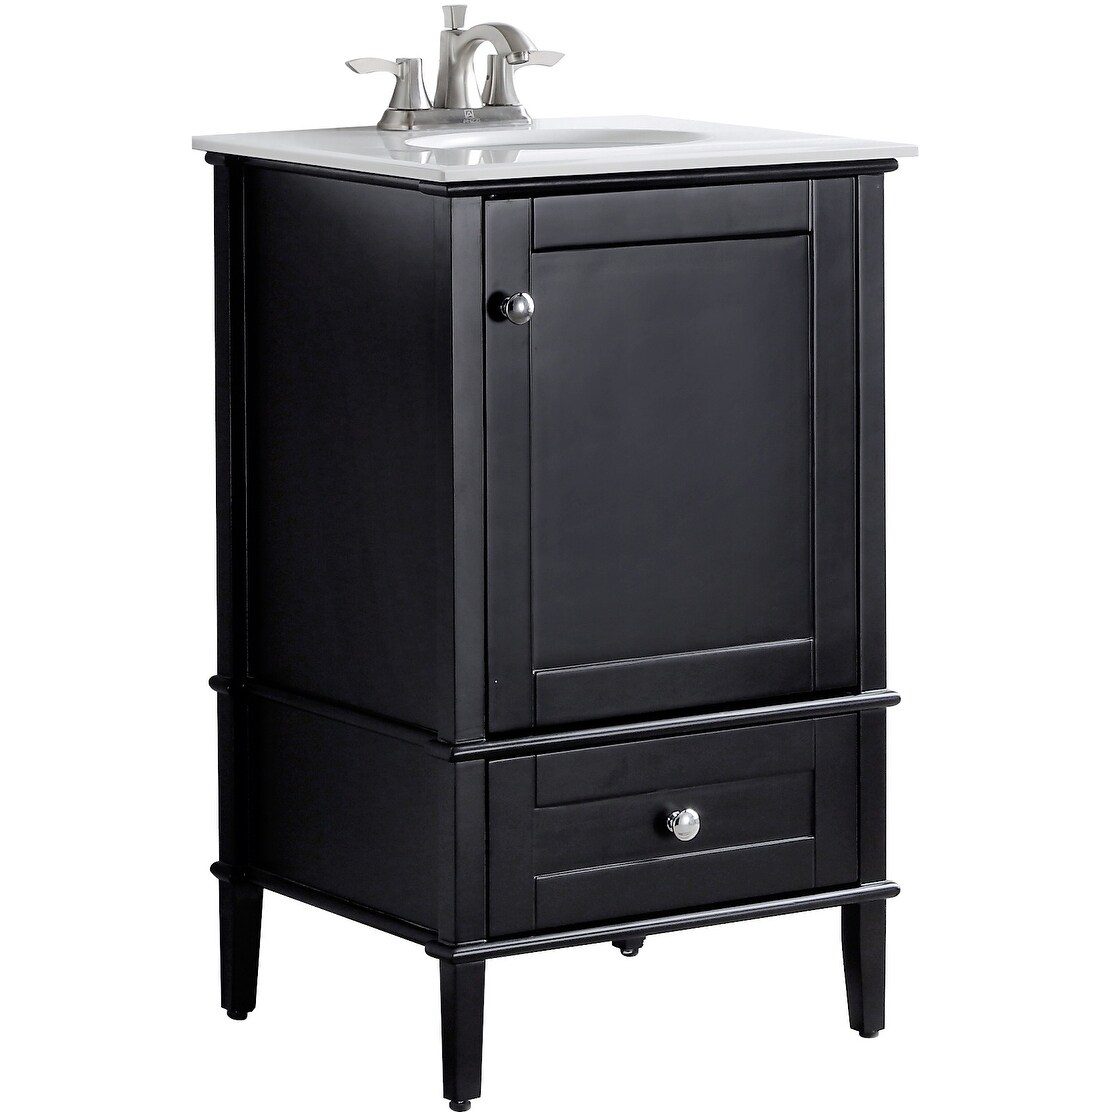 Admirable Anzzi Alexander 21 Bathroom Vanity Set In Rich Black Download Free Architecture Designs Intelgarnamadebymaigaardcom